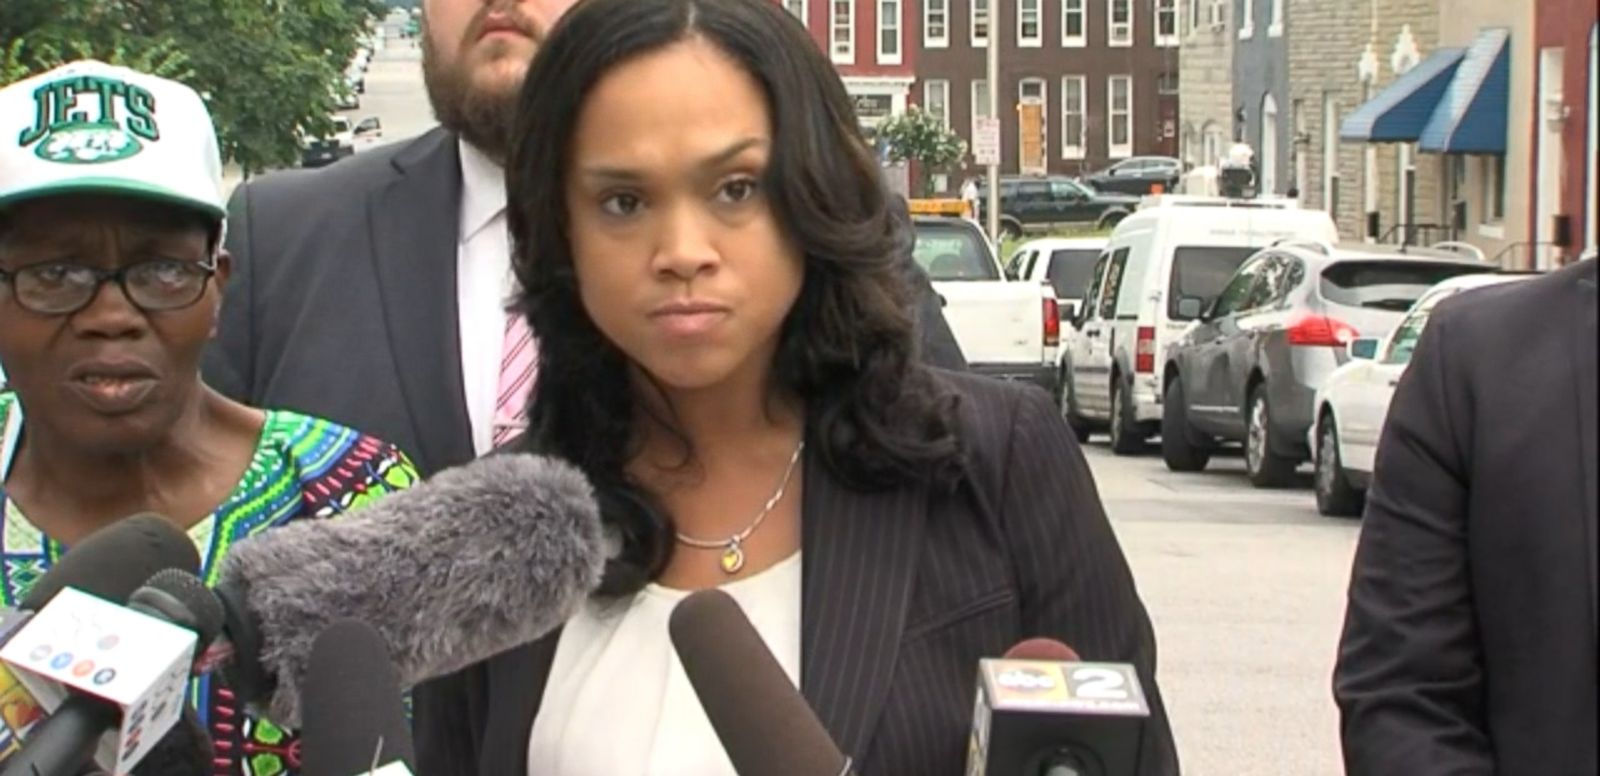 VIDEO: Prosecutors in Baltimore dropped all charges against the three remaining Baltimore police officers charged in the death of Freddie Gray despite holding firm in their belief that Gray's death was a homicide.